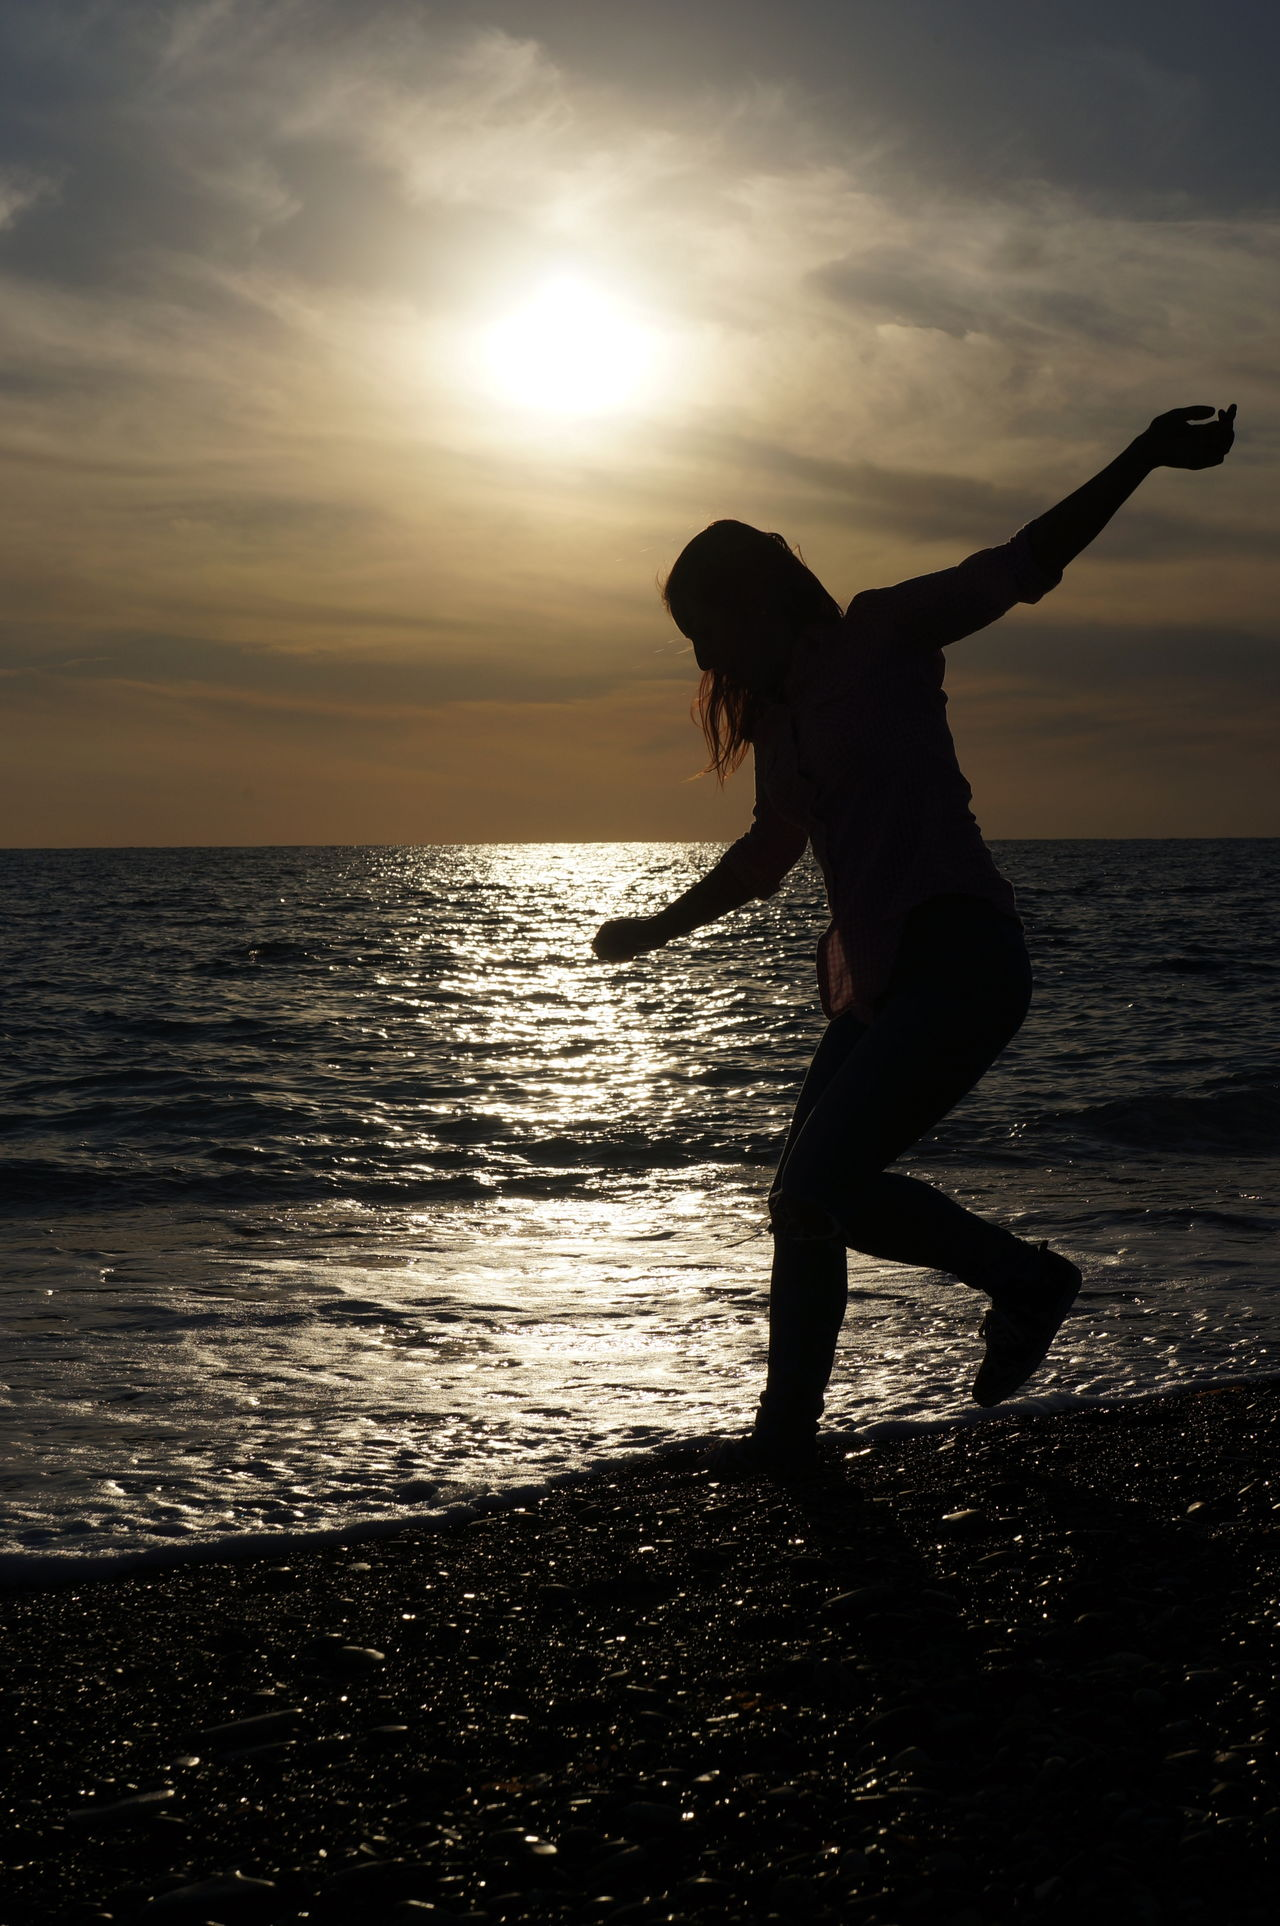 Backlight Beach Cyprus Full Length Girl Happiness Horizon Over Water Leisure Activity Mediterranean Sea Motion Nature One Person Outdoors Silhouette Sky Sunlight Sunset Water Wave Woman